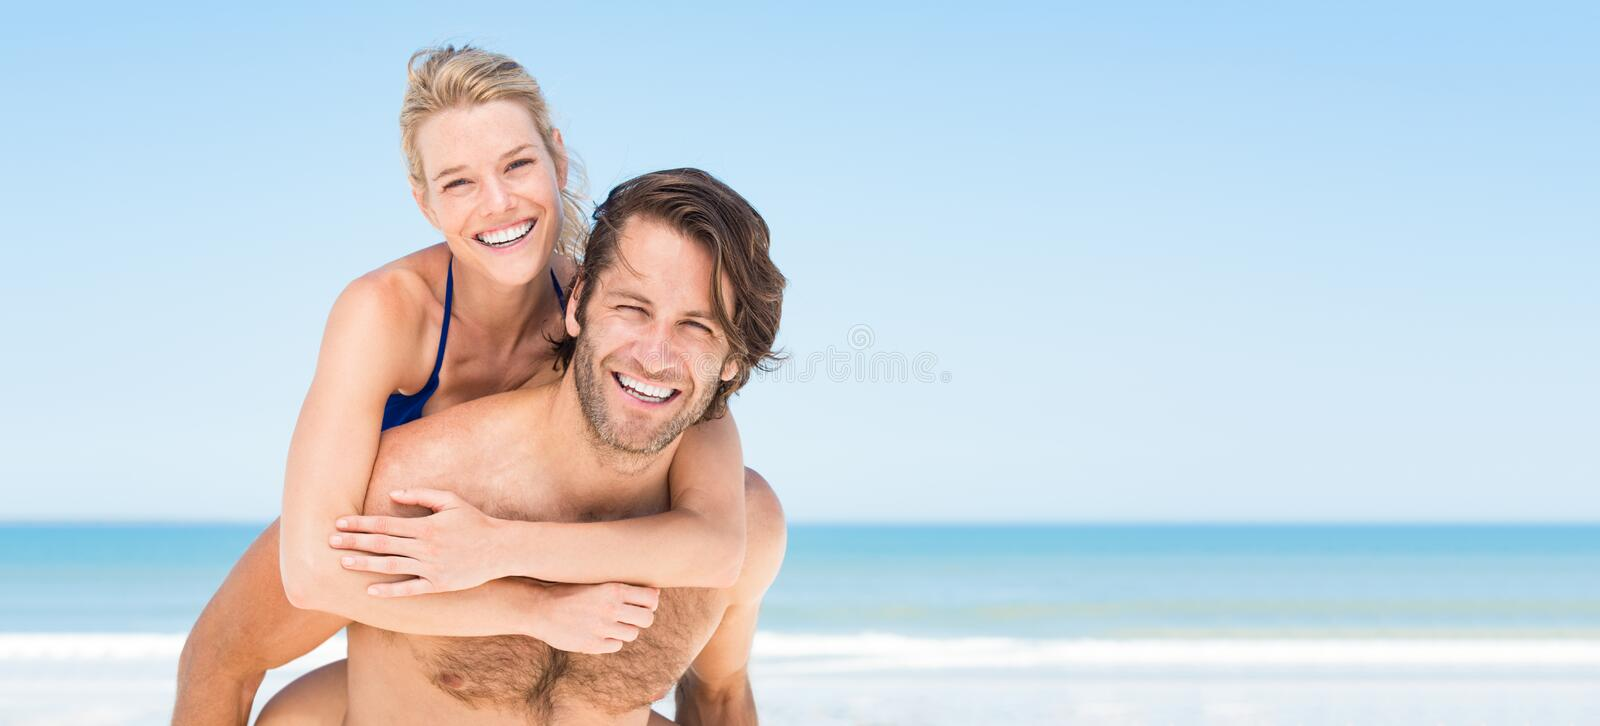 Summer couple at beach royalty free stock images